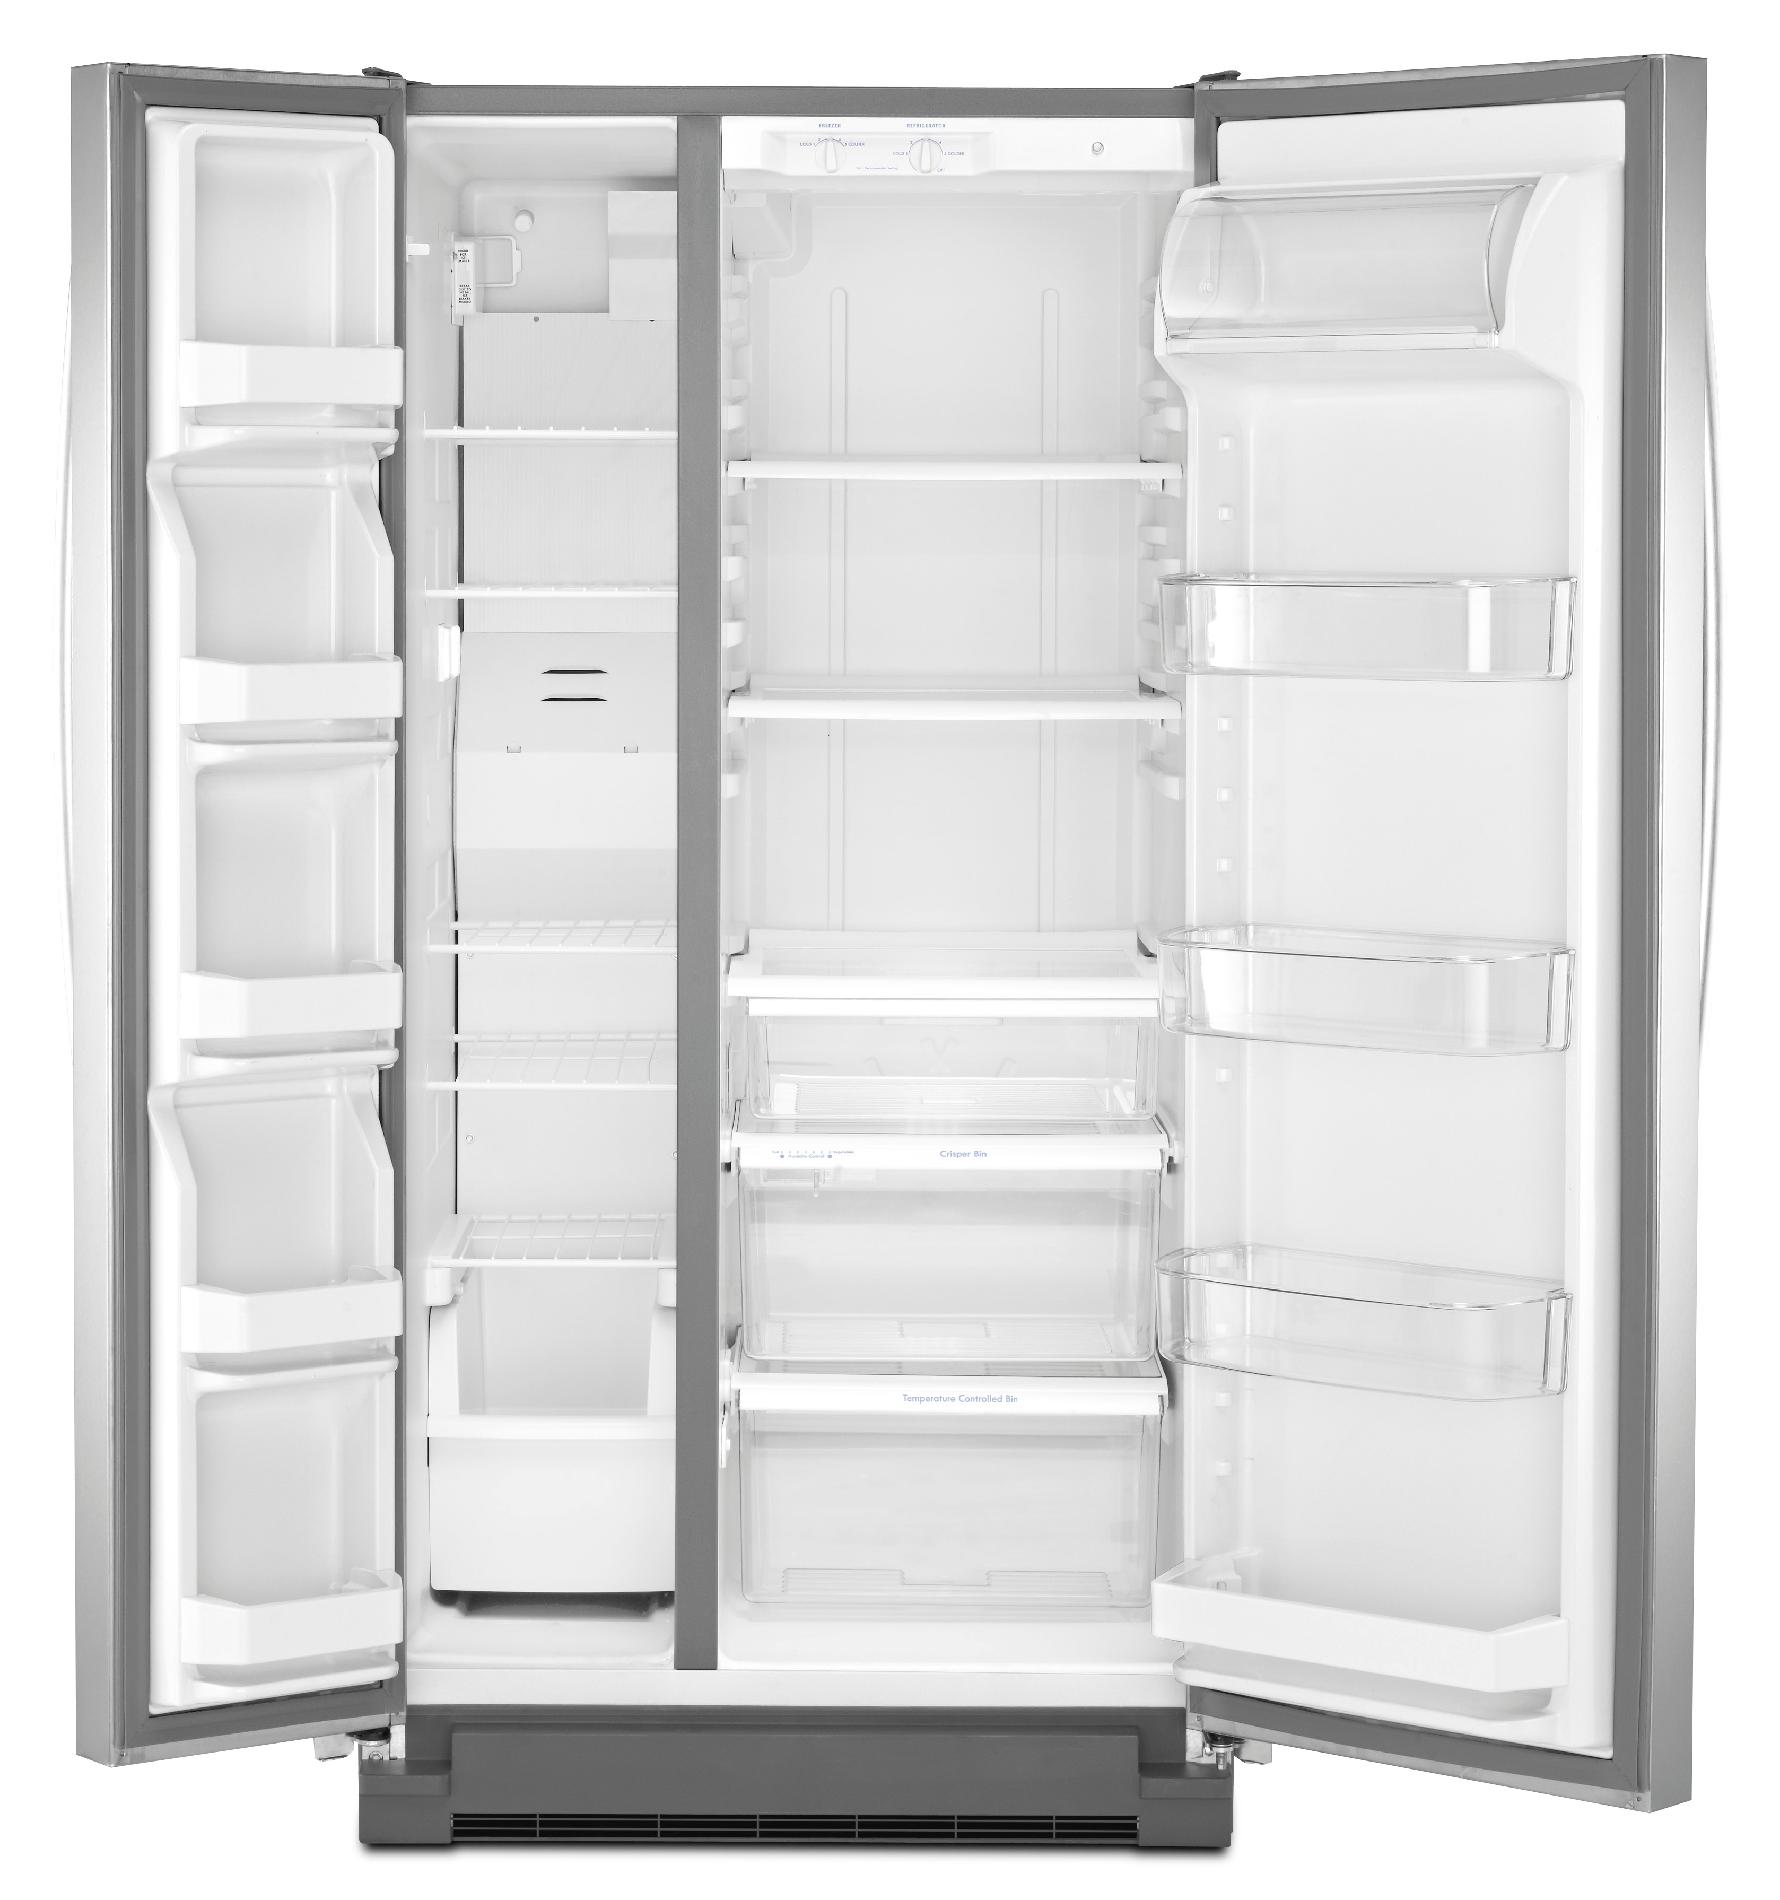 Kenmore 21.7 cu. ft. Side-by-Side Refrigerator - Stainless Steel